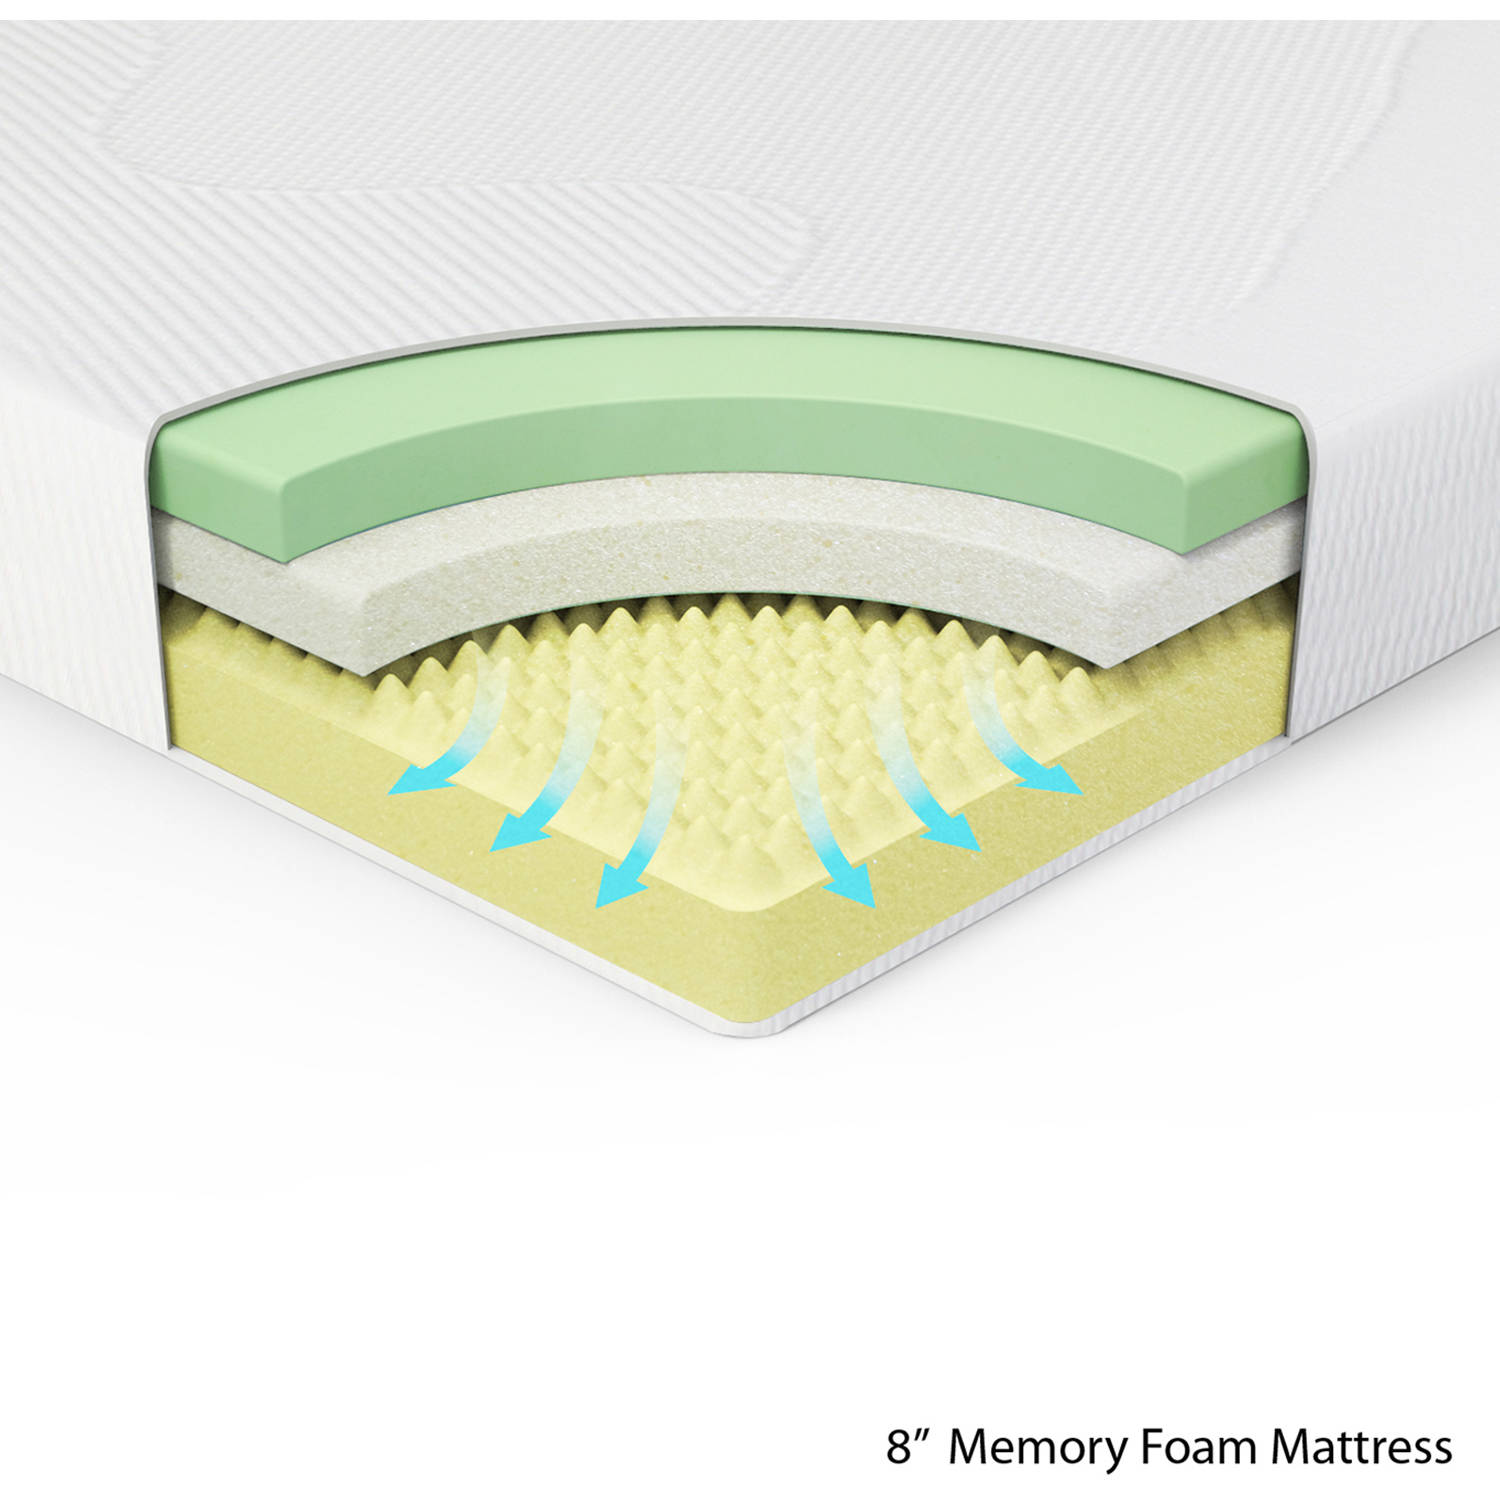 Spa Sensations 8 Memory Foam Mattress Full Size Ebay